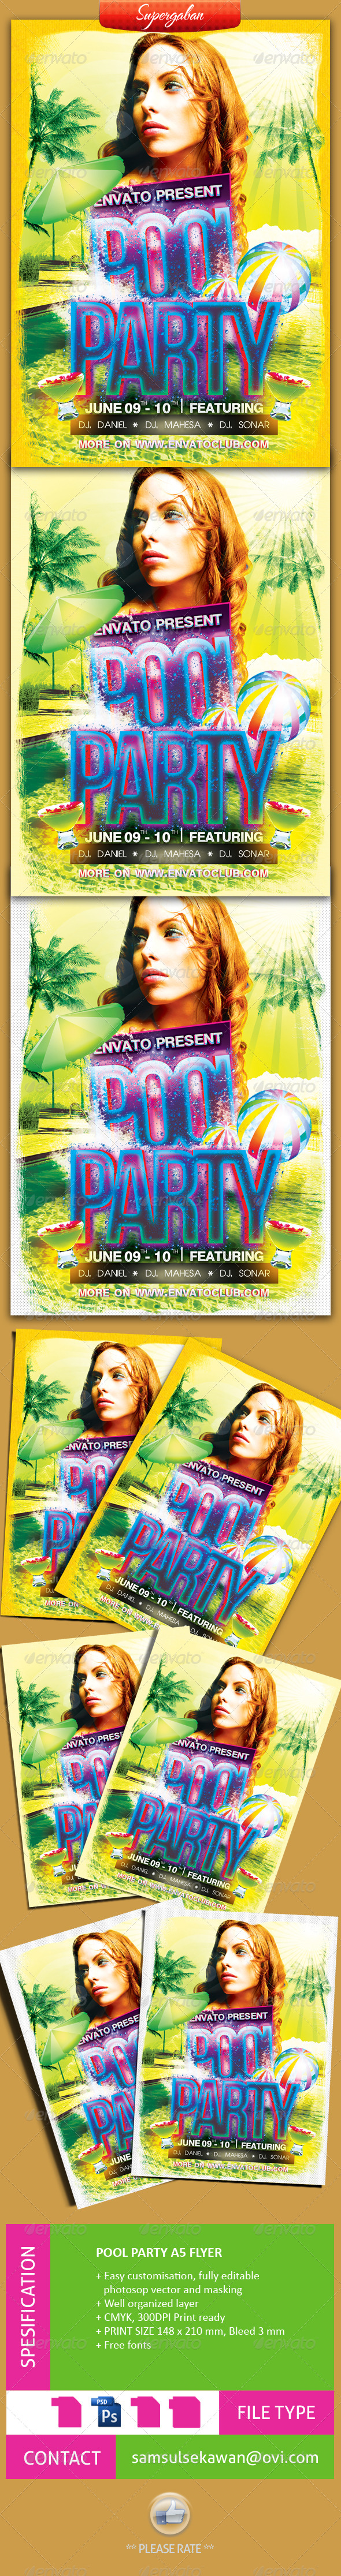 GraphicRiver Pool Party A5 Flyer 4514275